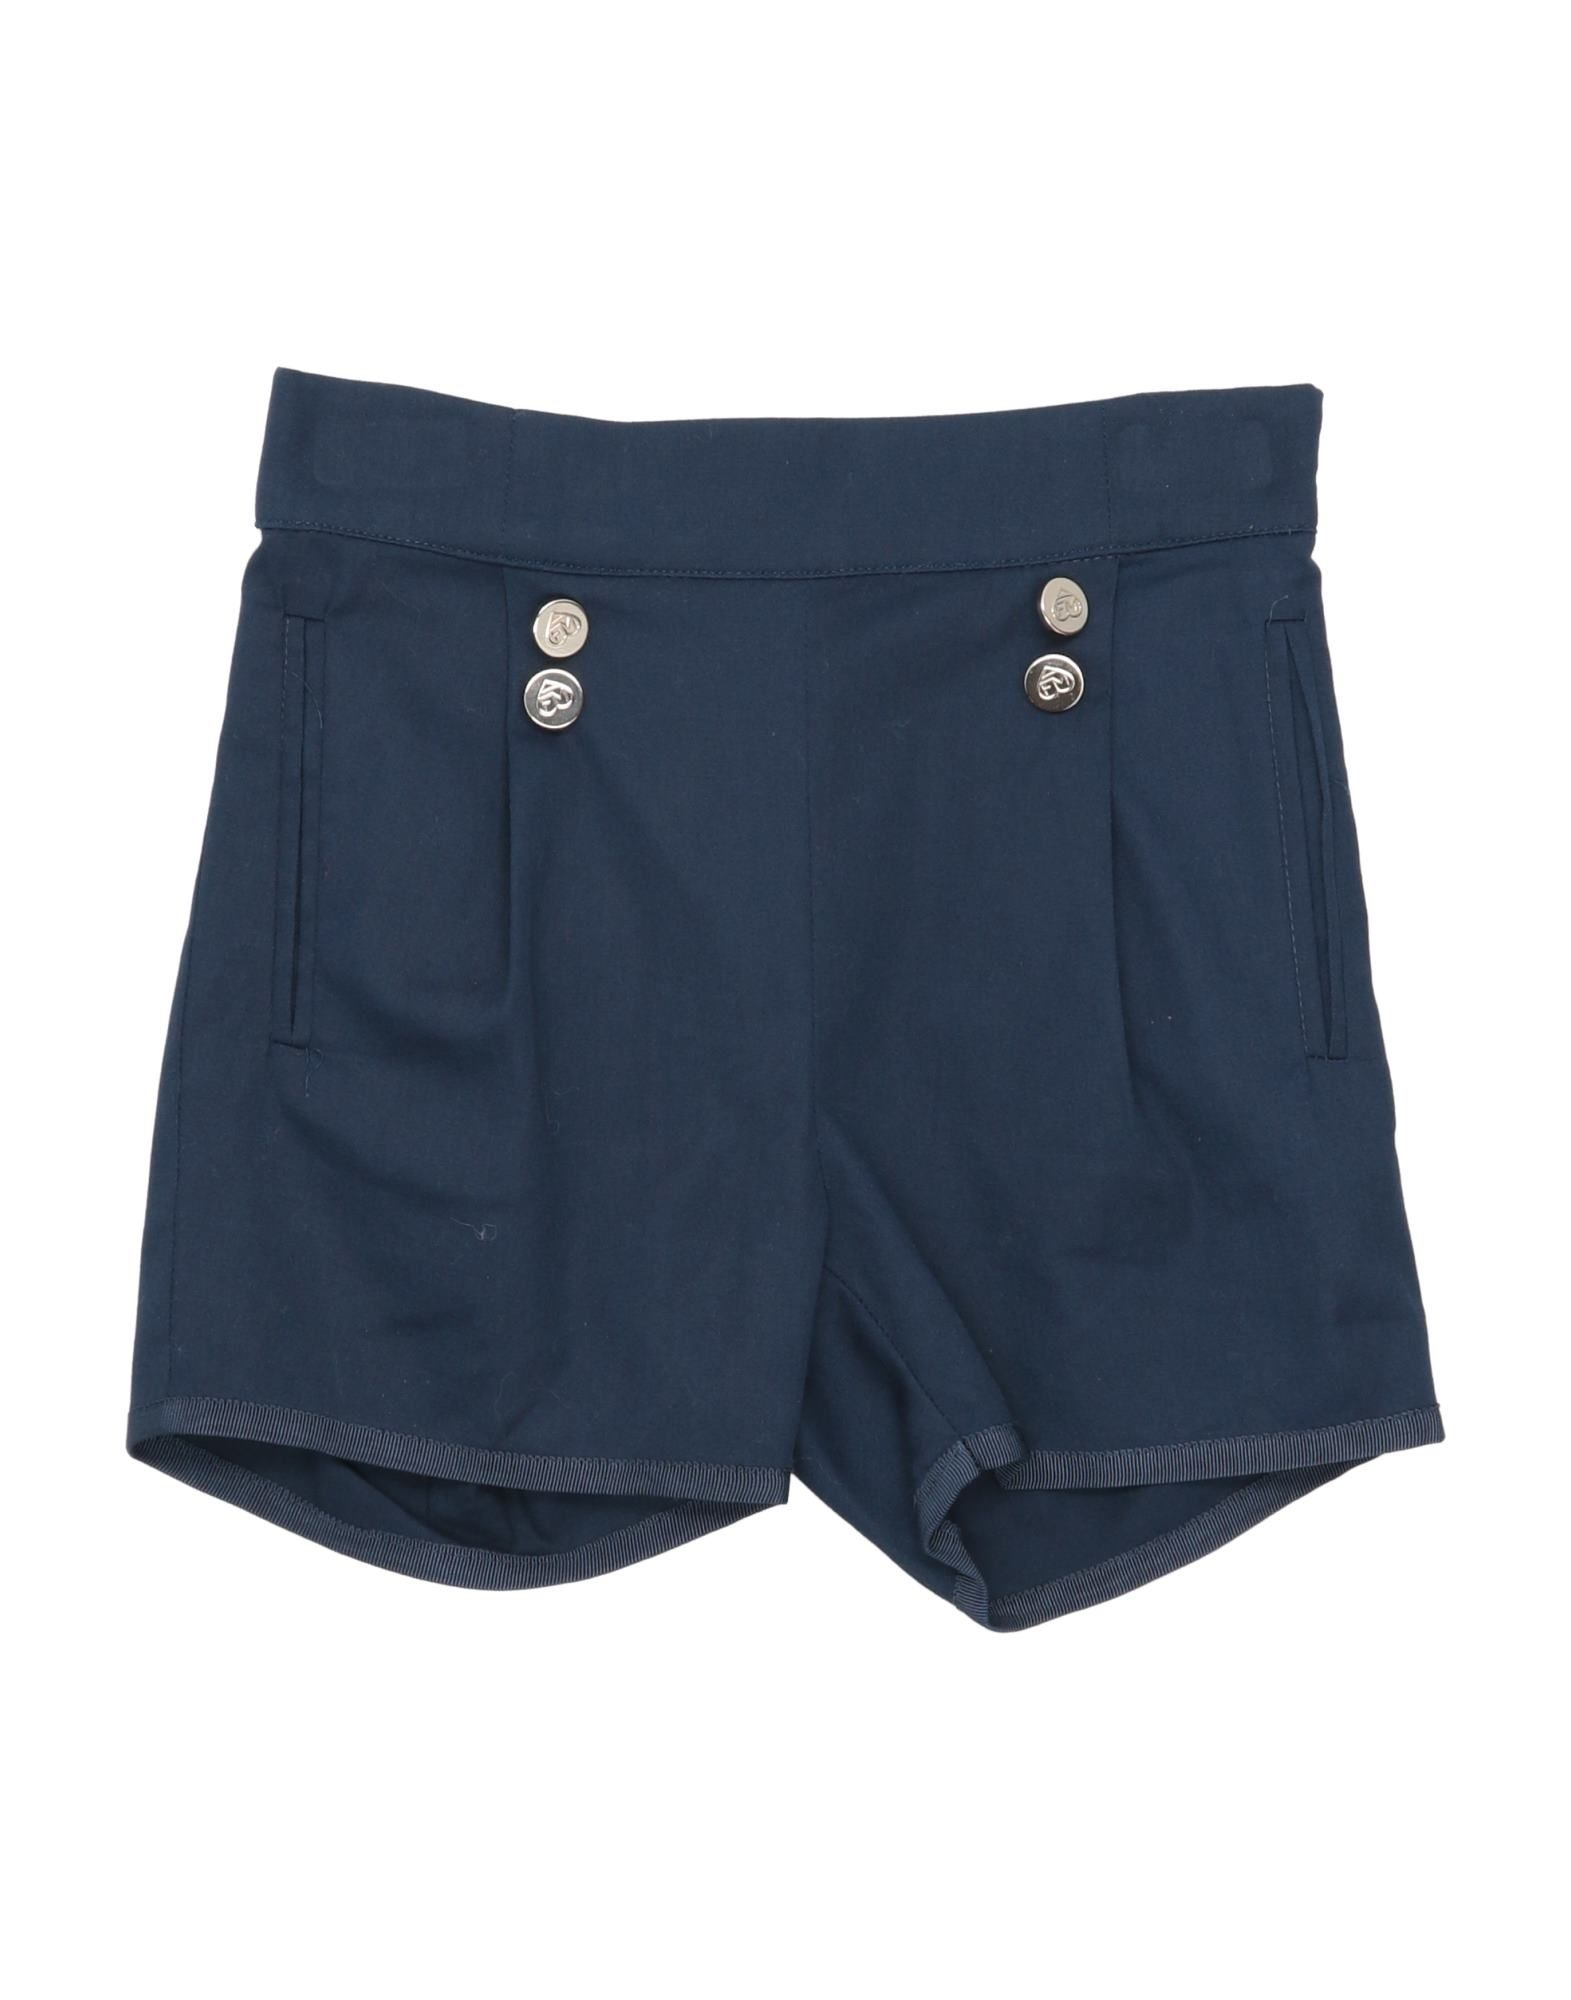 Frankie Morello Kids' Shorts In Blue